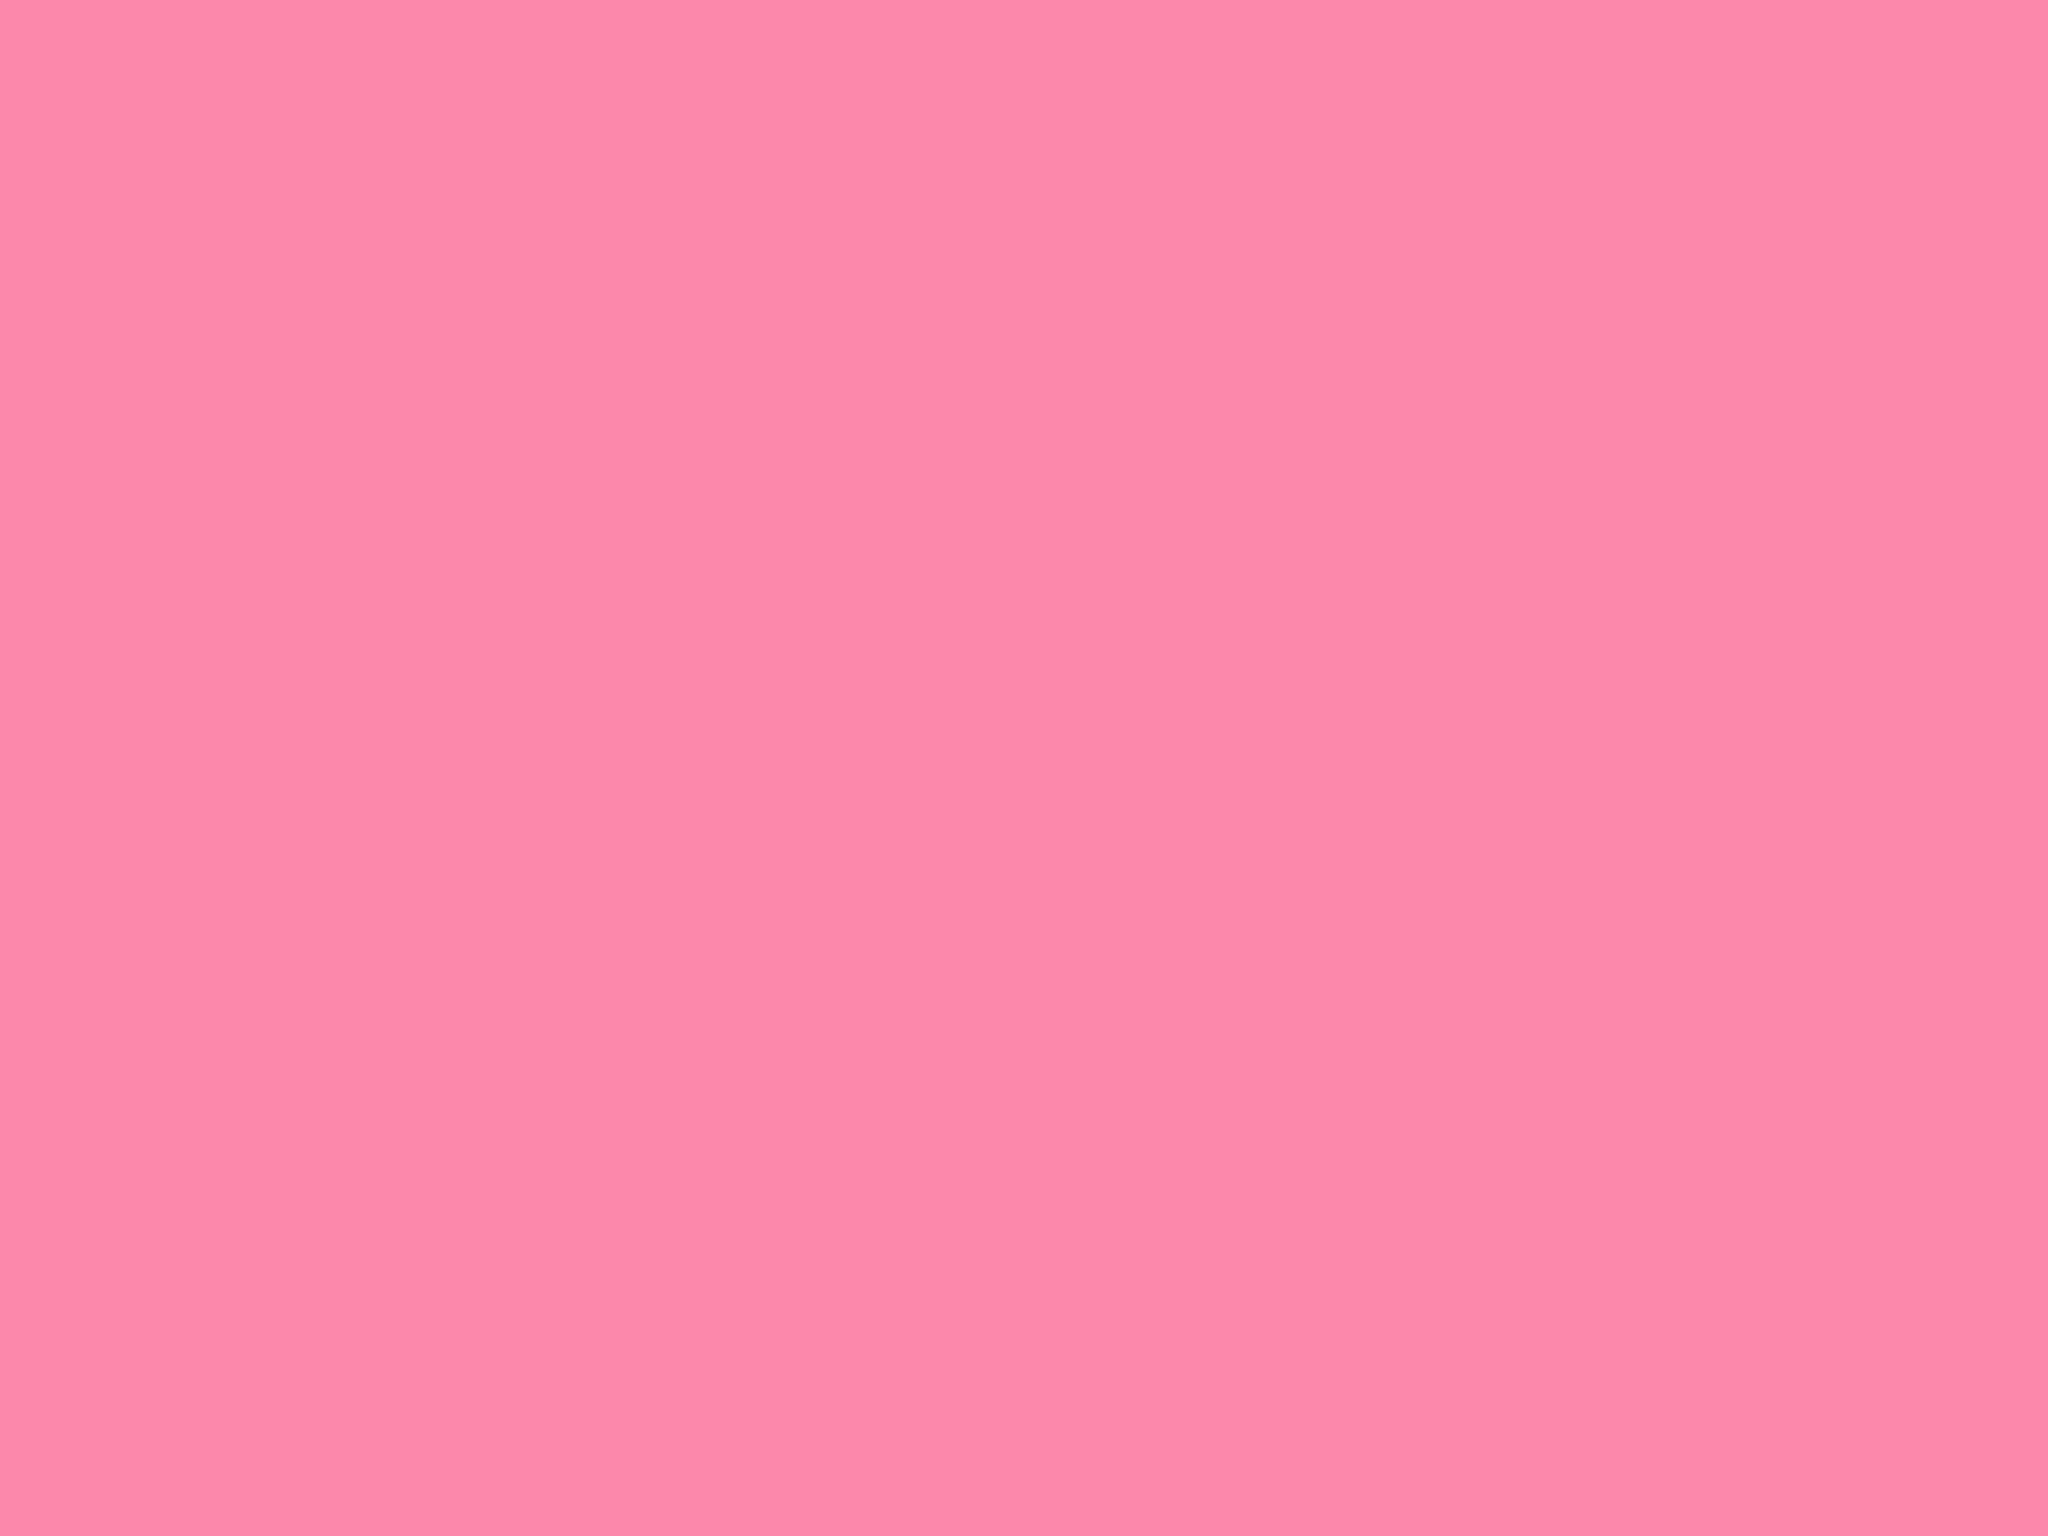 2048x1536 Tickle Me Pink Solid Color Background